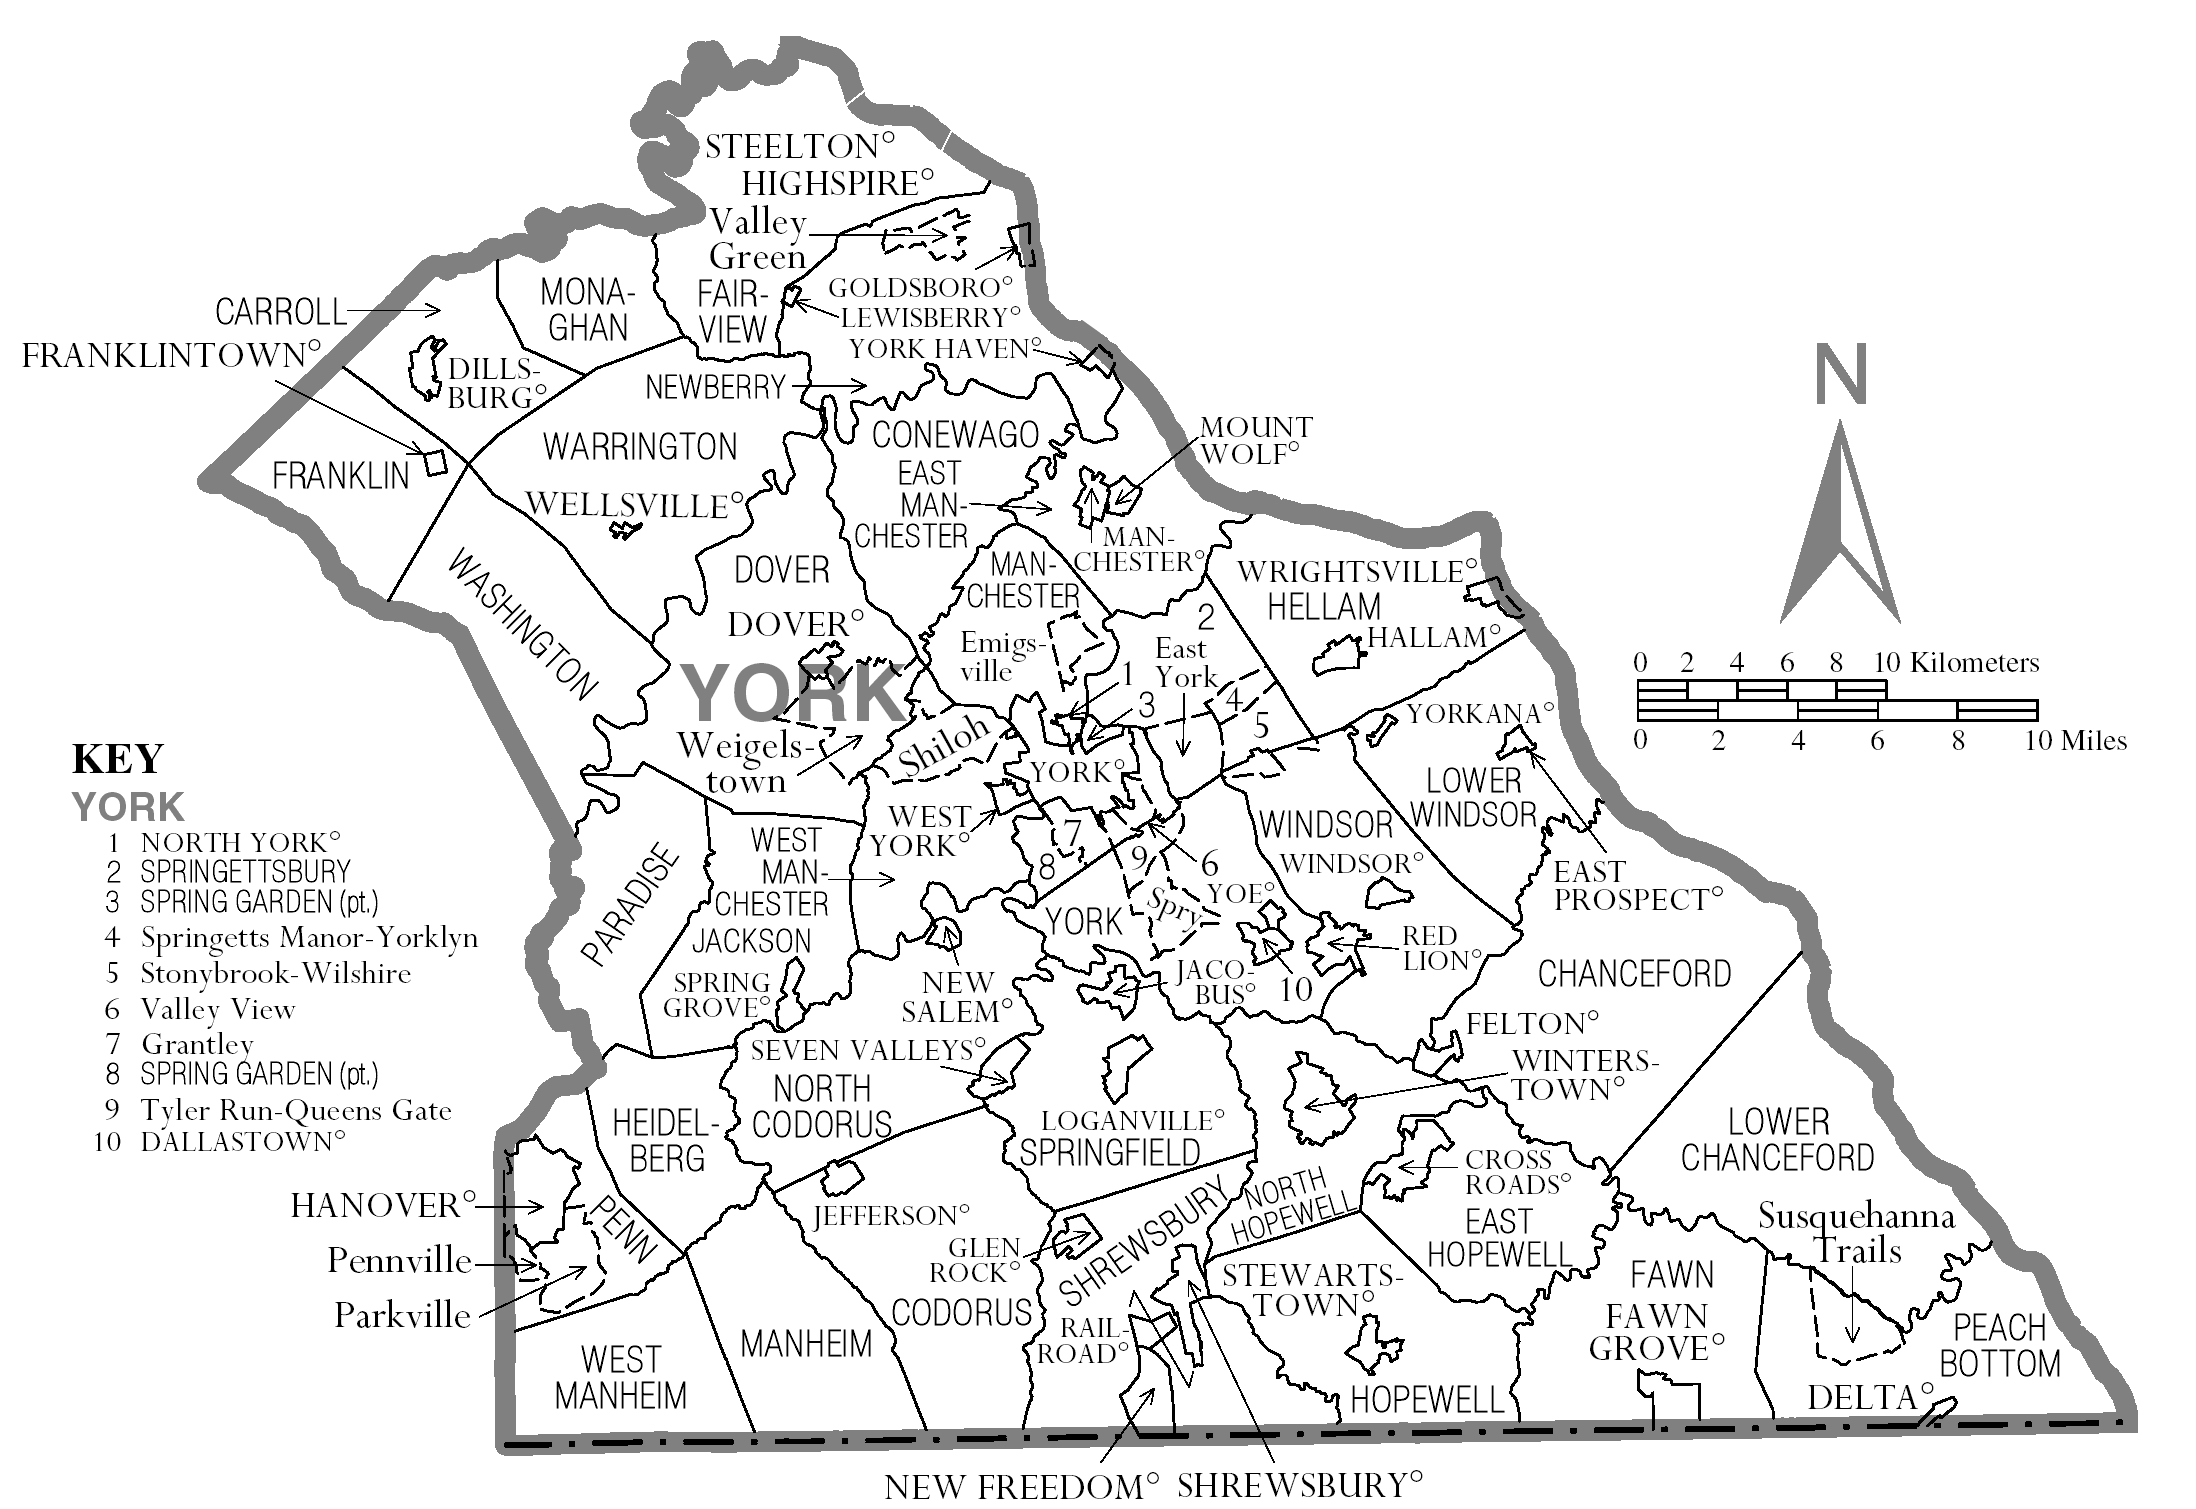 File:Map of York County, Pennsylvania.png - Wikimedia Commons on york pa street map, york county pa driving map, pennsylvania borough map, york co map, york township pa ward map,